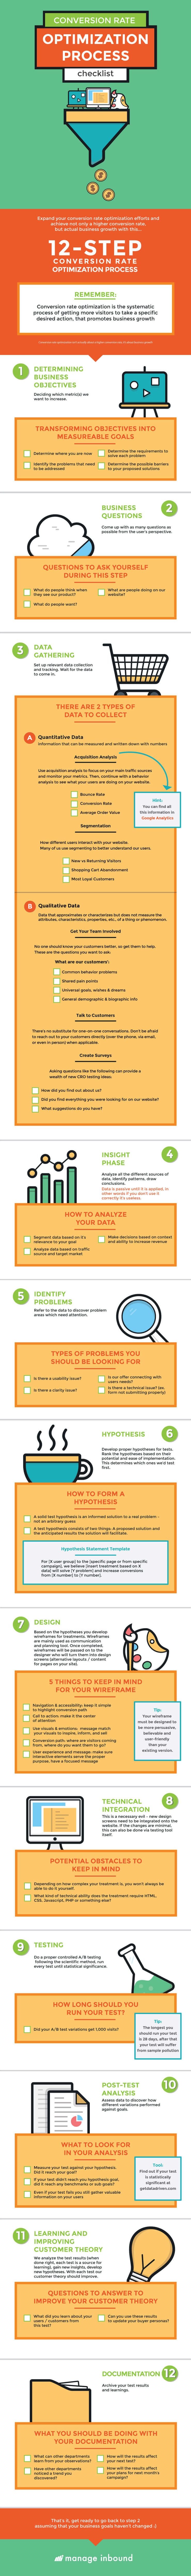 cro process checklist infographic